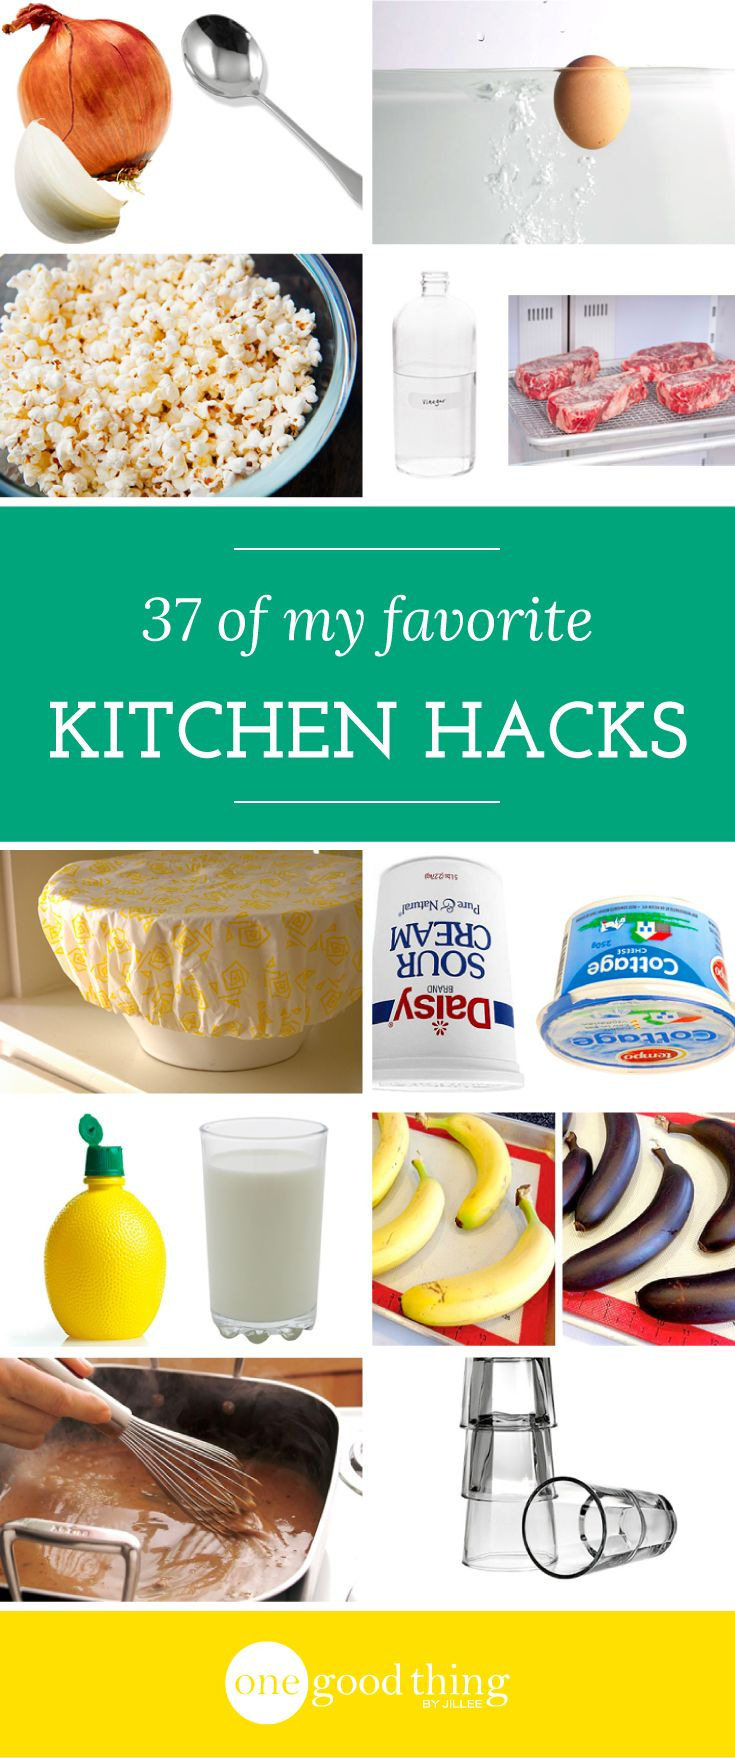 37 Of My Favorite Tips To Save Time (And Your Sanity) In The Kitchen